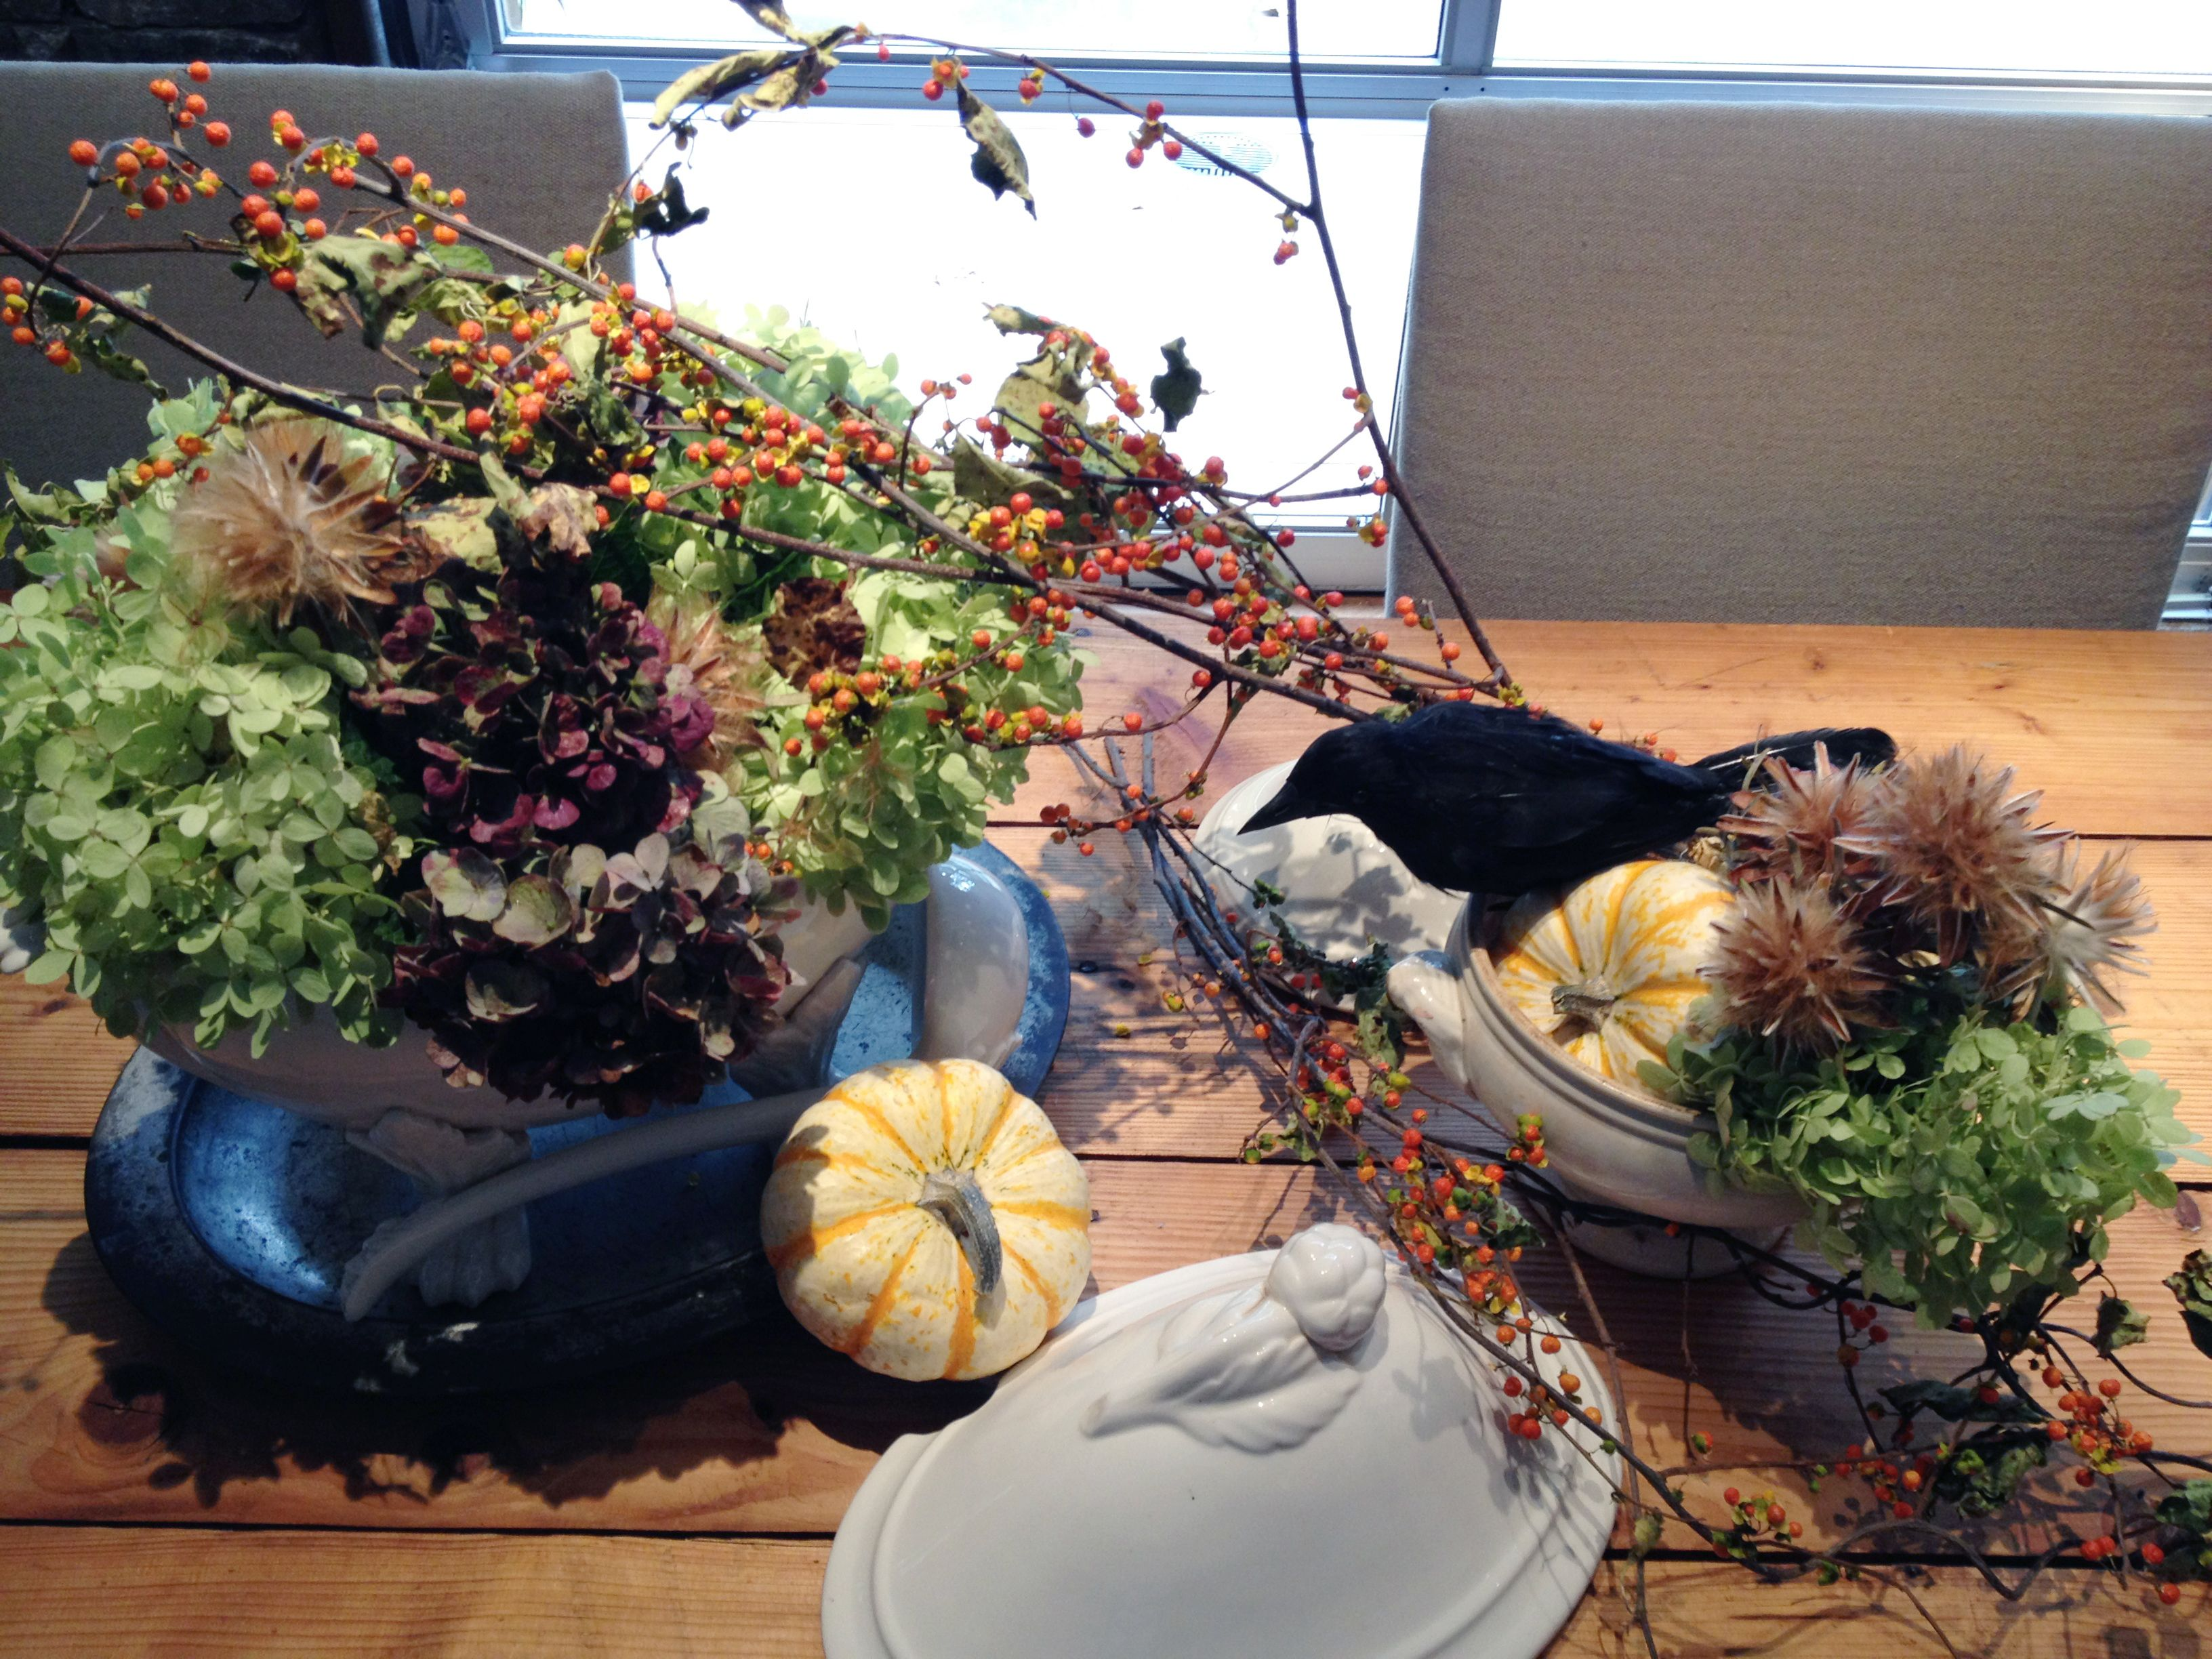 a collection of ceramic tureens or vessels, I like white or cream  - a selection of fall flowers, I used hydrangeas and they will dry nicely  - 3 small pumpkins about 4 inches in diameter  - 1 bunch of bittersweet branches  - dried thistle  - 1 black bird